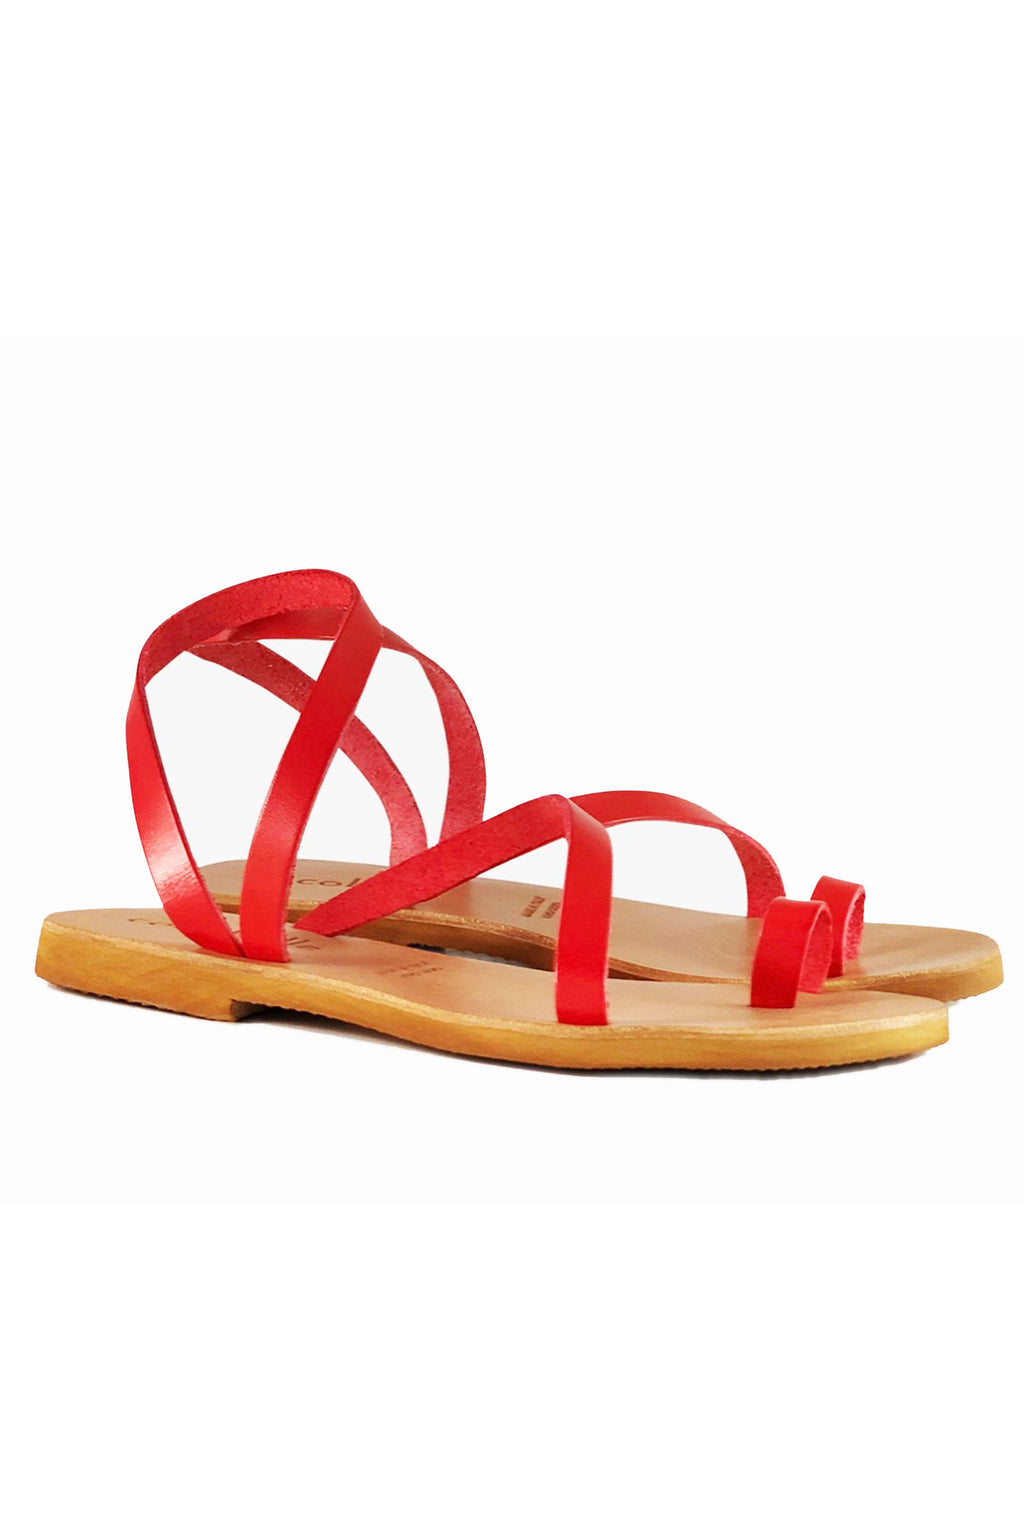 Cocobelle Crescent Sandal in Coral